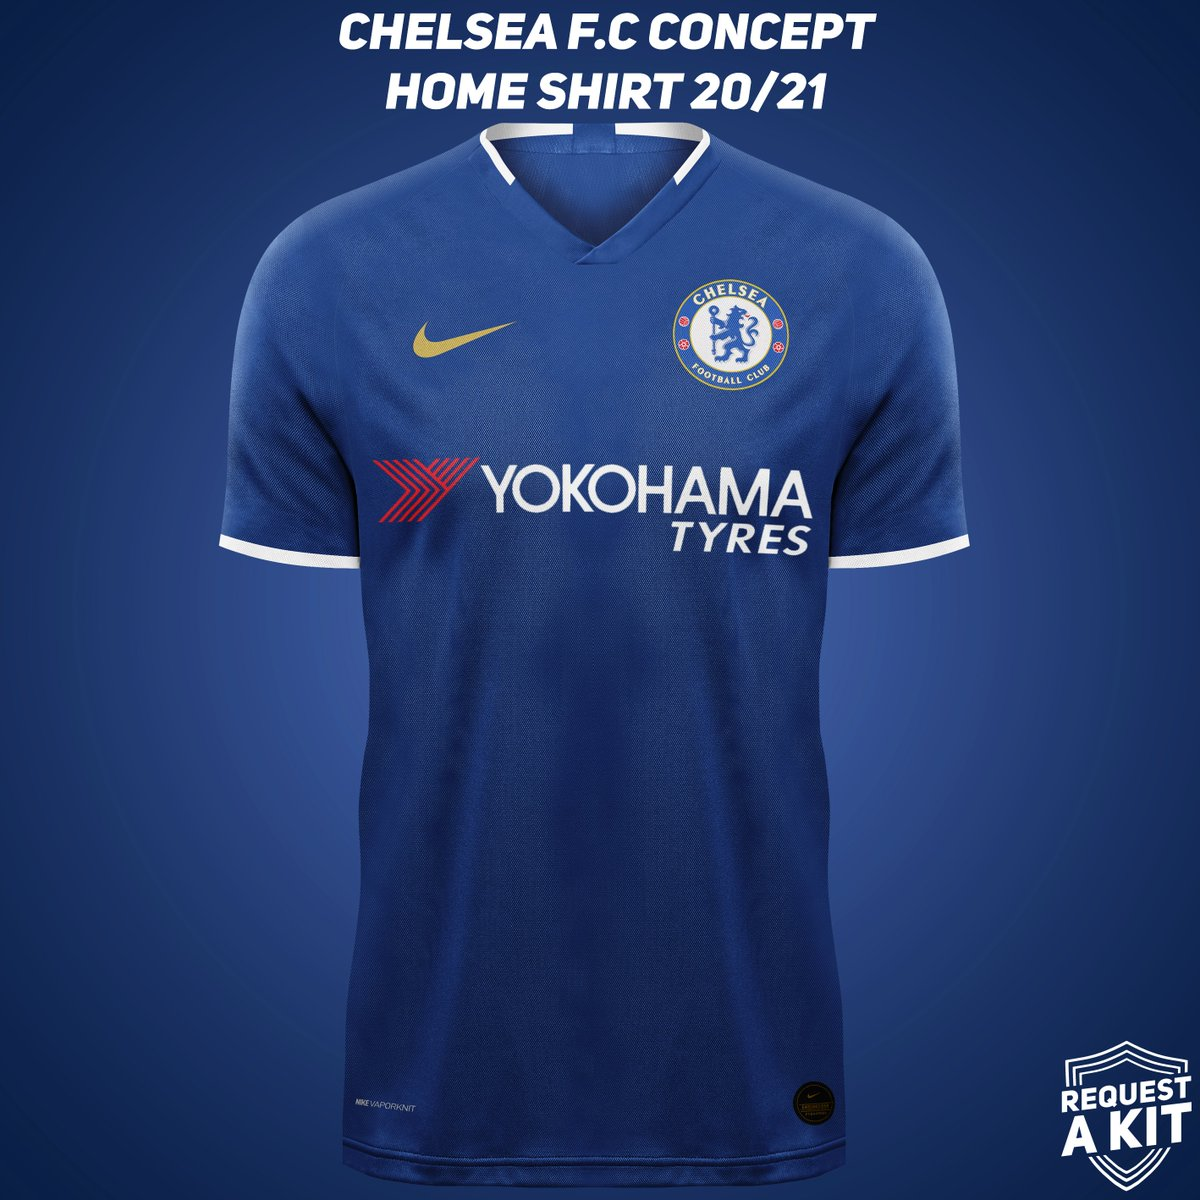 Request A Kit On Twitter Chelsea F C Concept Home Away And Third Shirts 2020 21 Requested By Hendocfc Chelsea Cfc Che Cfcfamily Ktbffh Fm20 Wearethecommunity Download For Your Football Manager Save Here Https T Co Ypcevsug0a